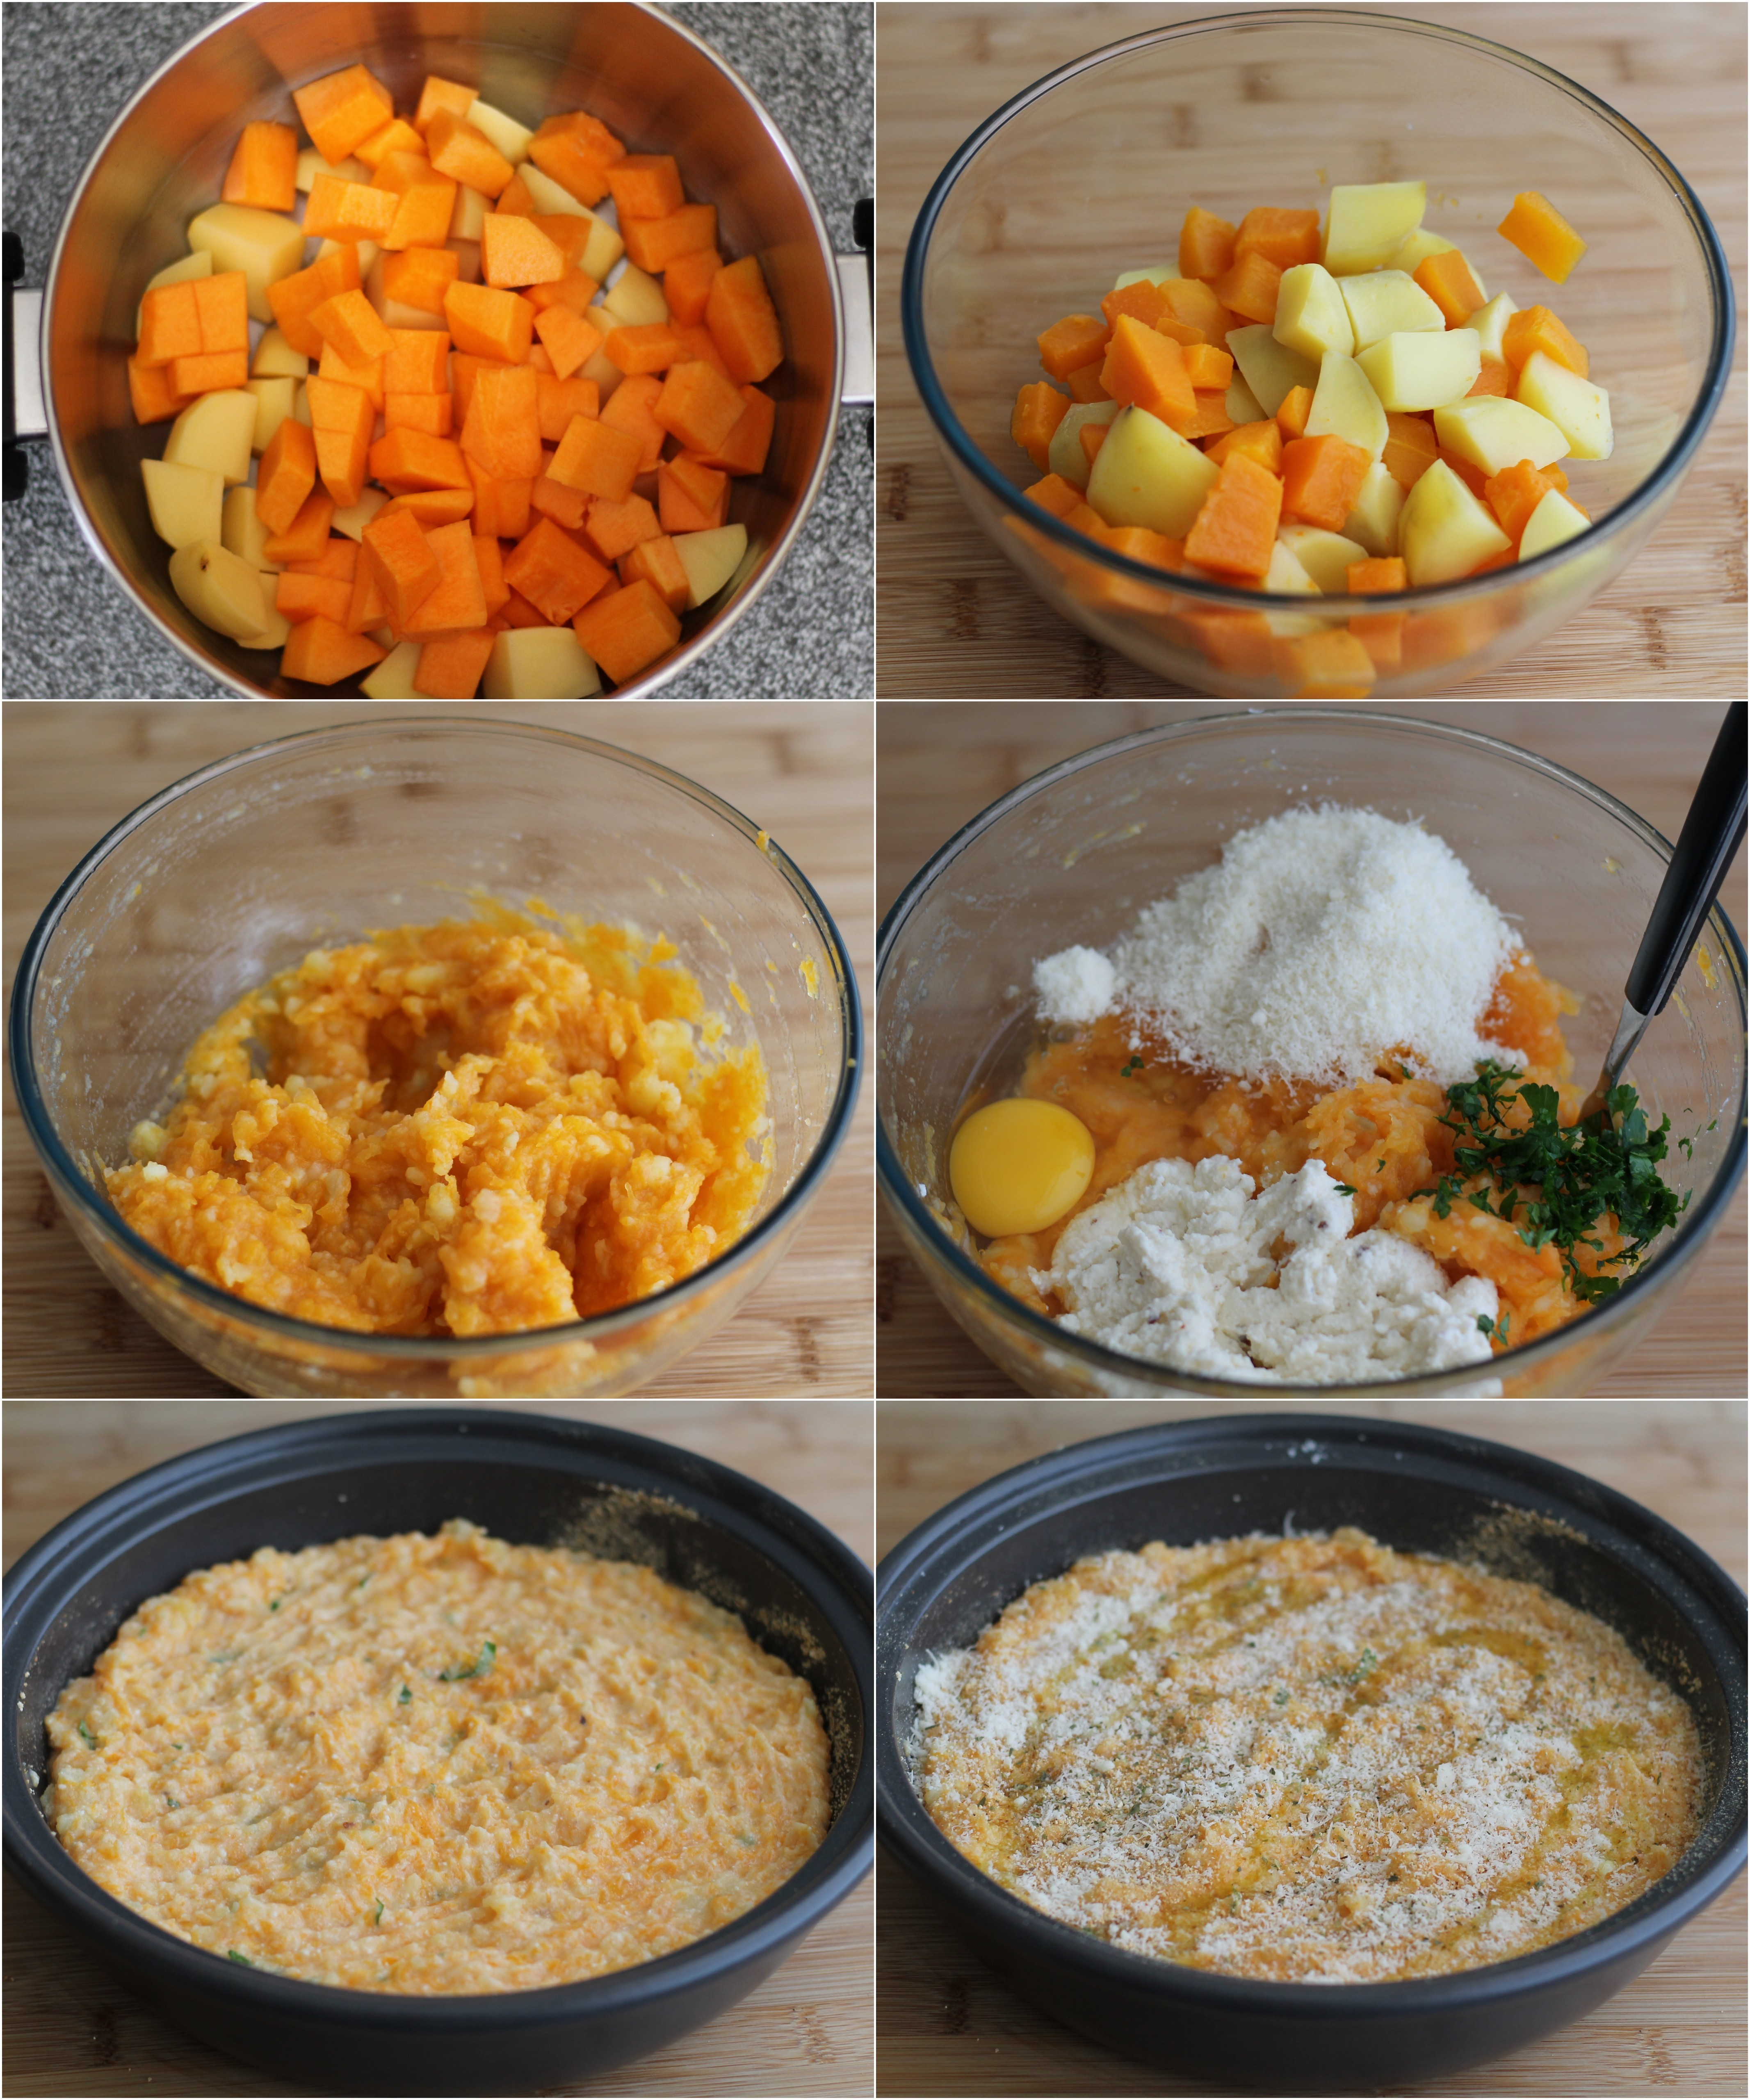 Sformato di patate e zucca senza glutine - Gluten Free Travel and Living